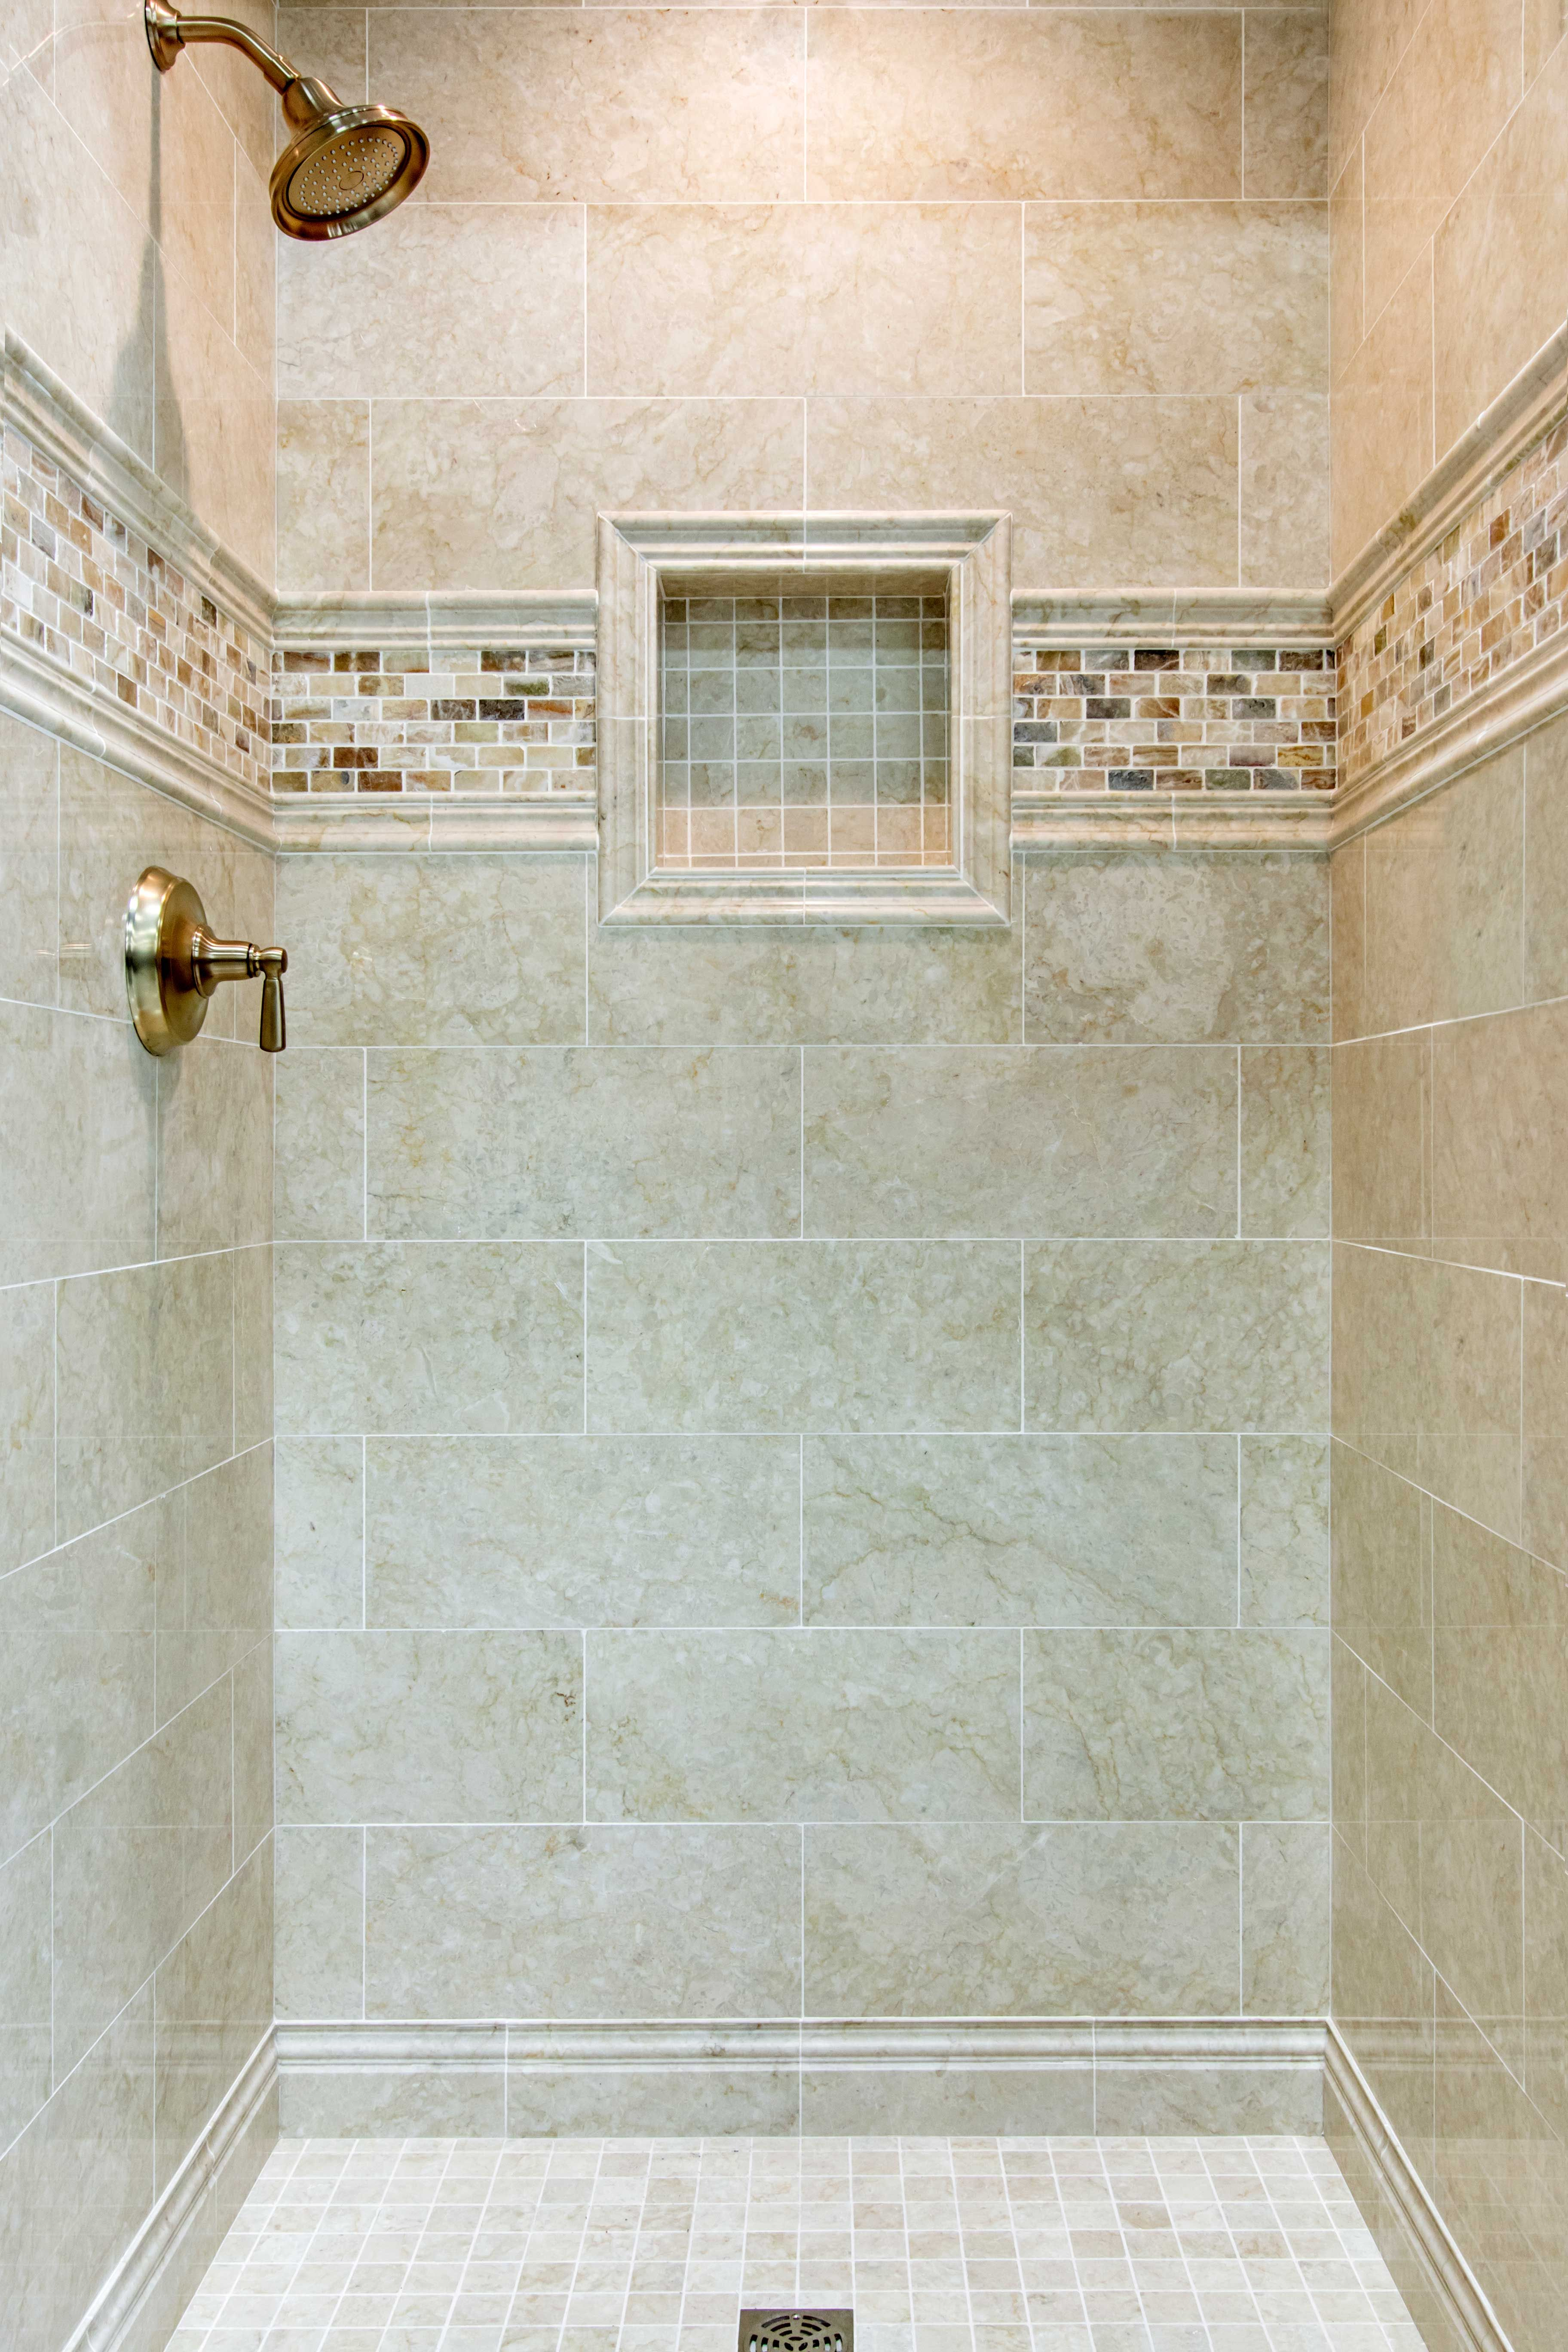 Embrace The Warm Aesthetics In Your Bathroom Shower Tile Avorio Fiorito Polished Marble Floor Tile